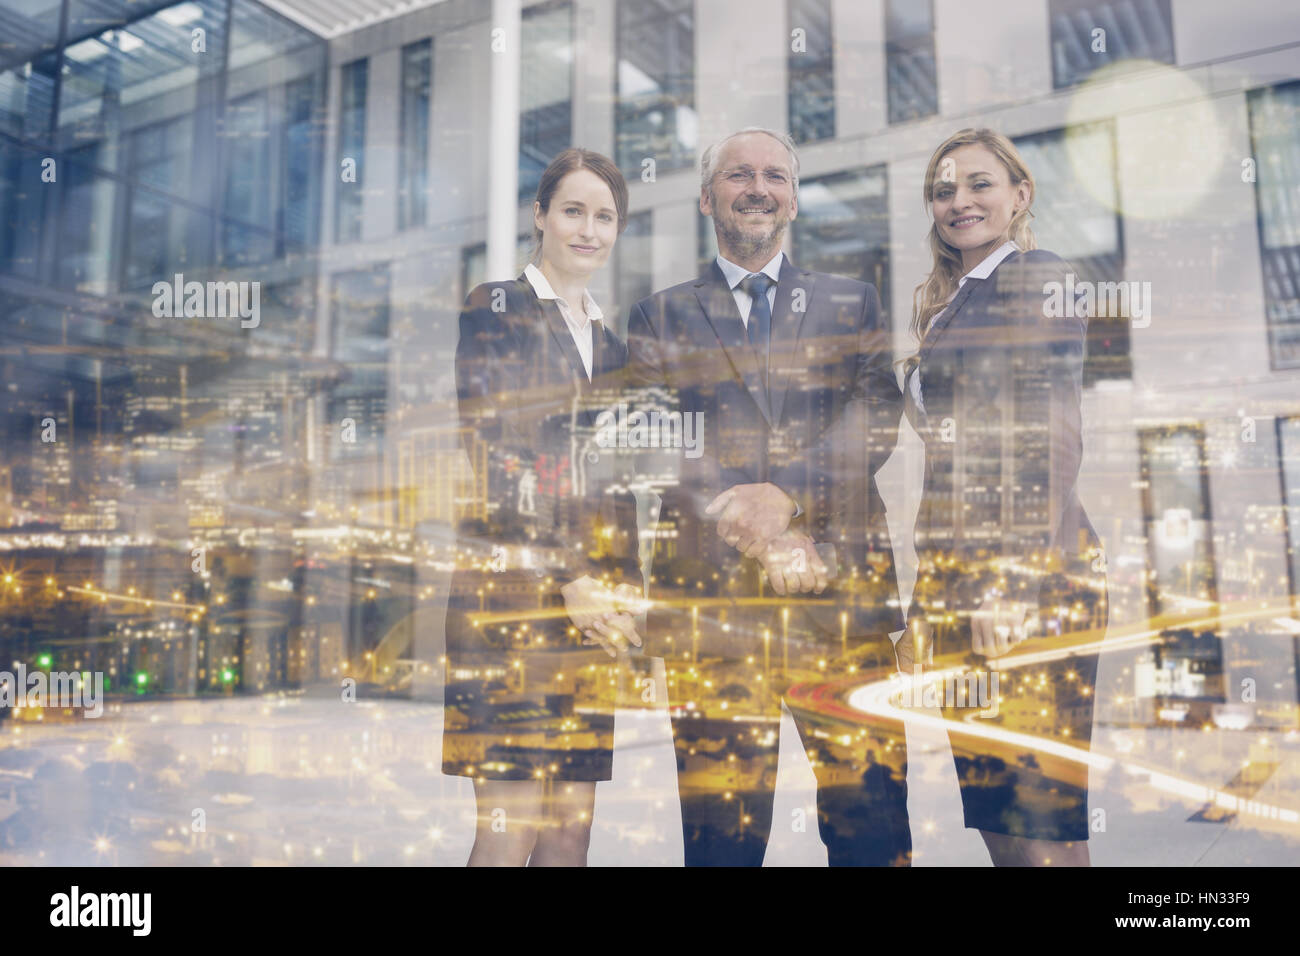 Portrait of confident businesspeople standing in office premises - Stock Image